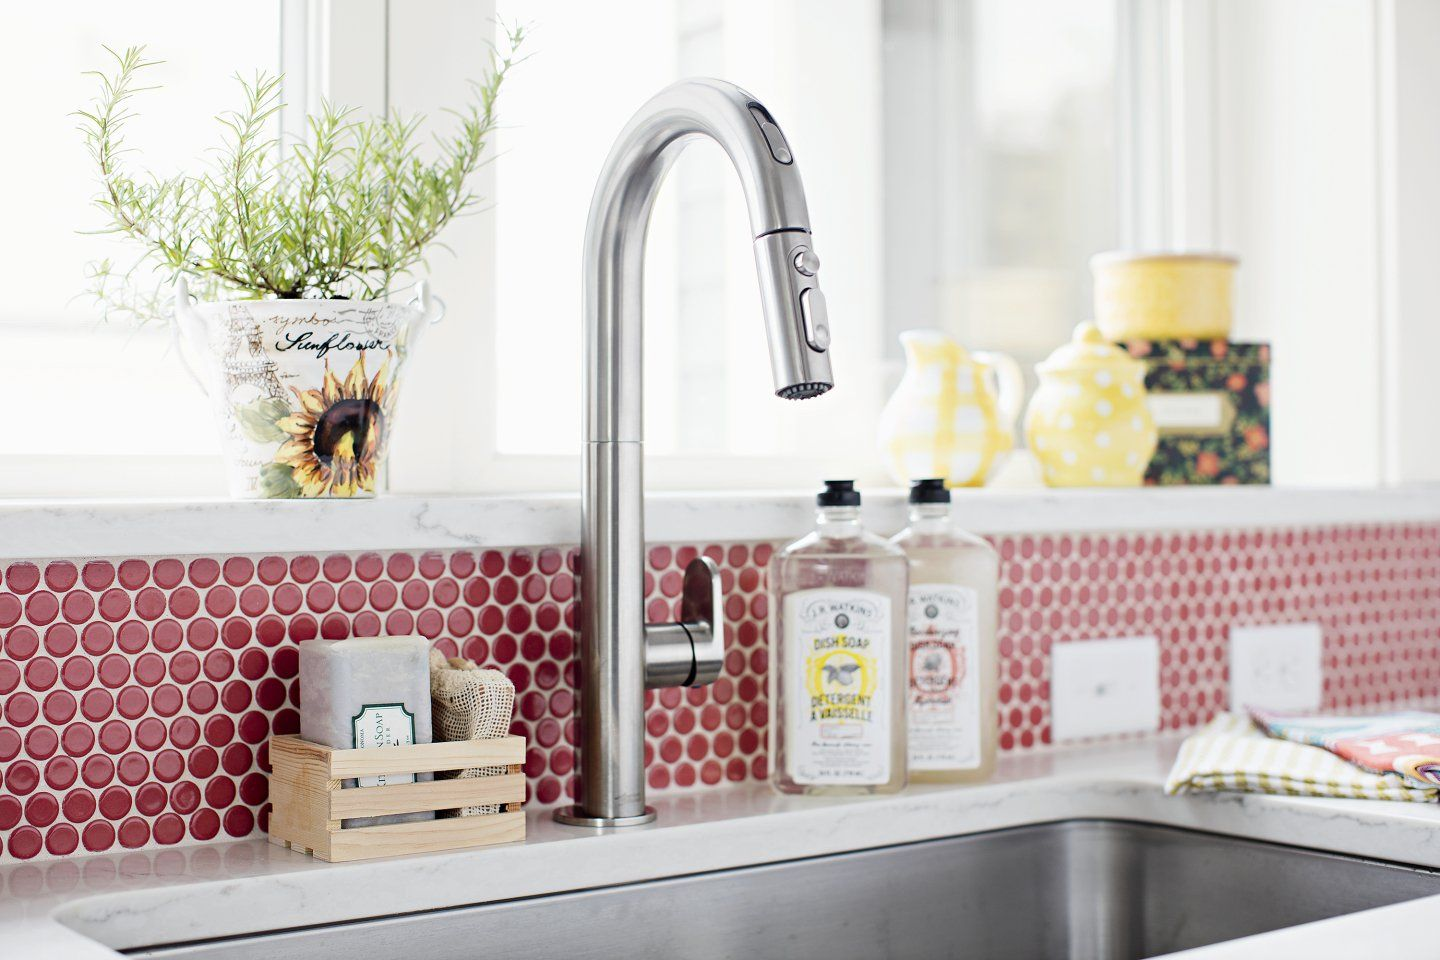 Tile Backsplash Gives The Kitchen Sink